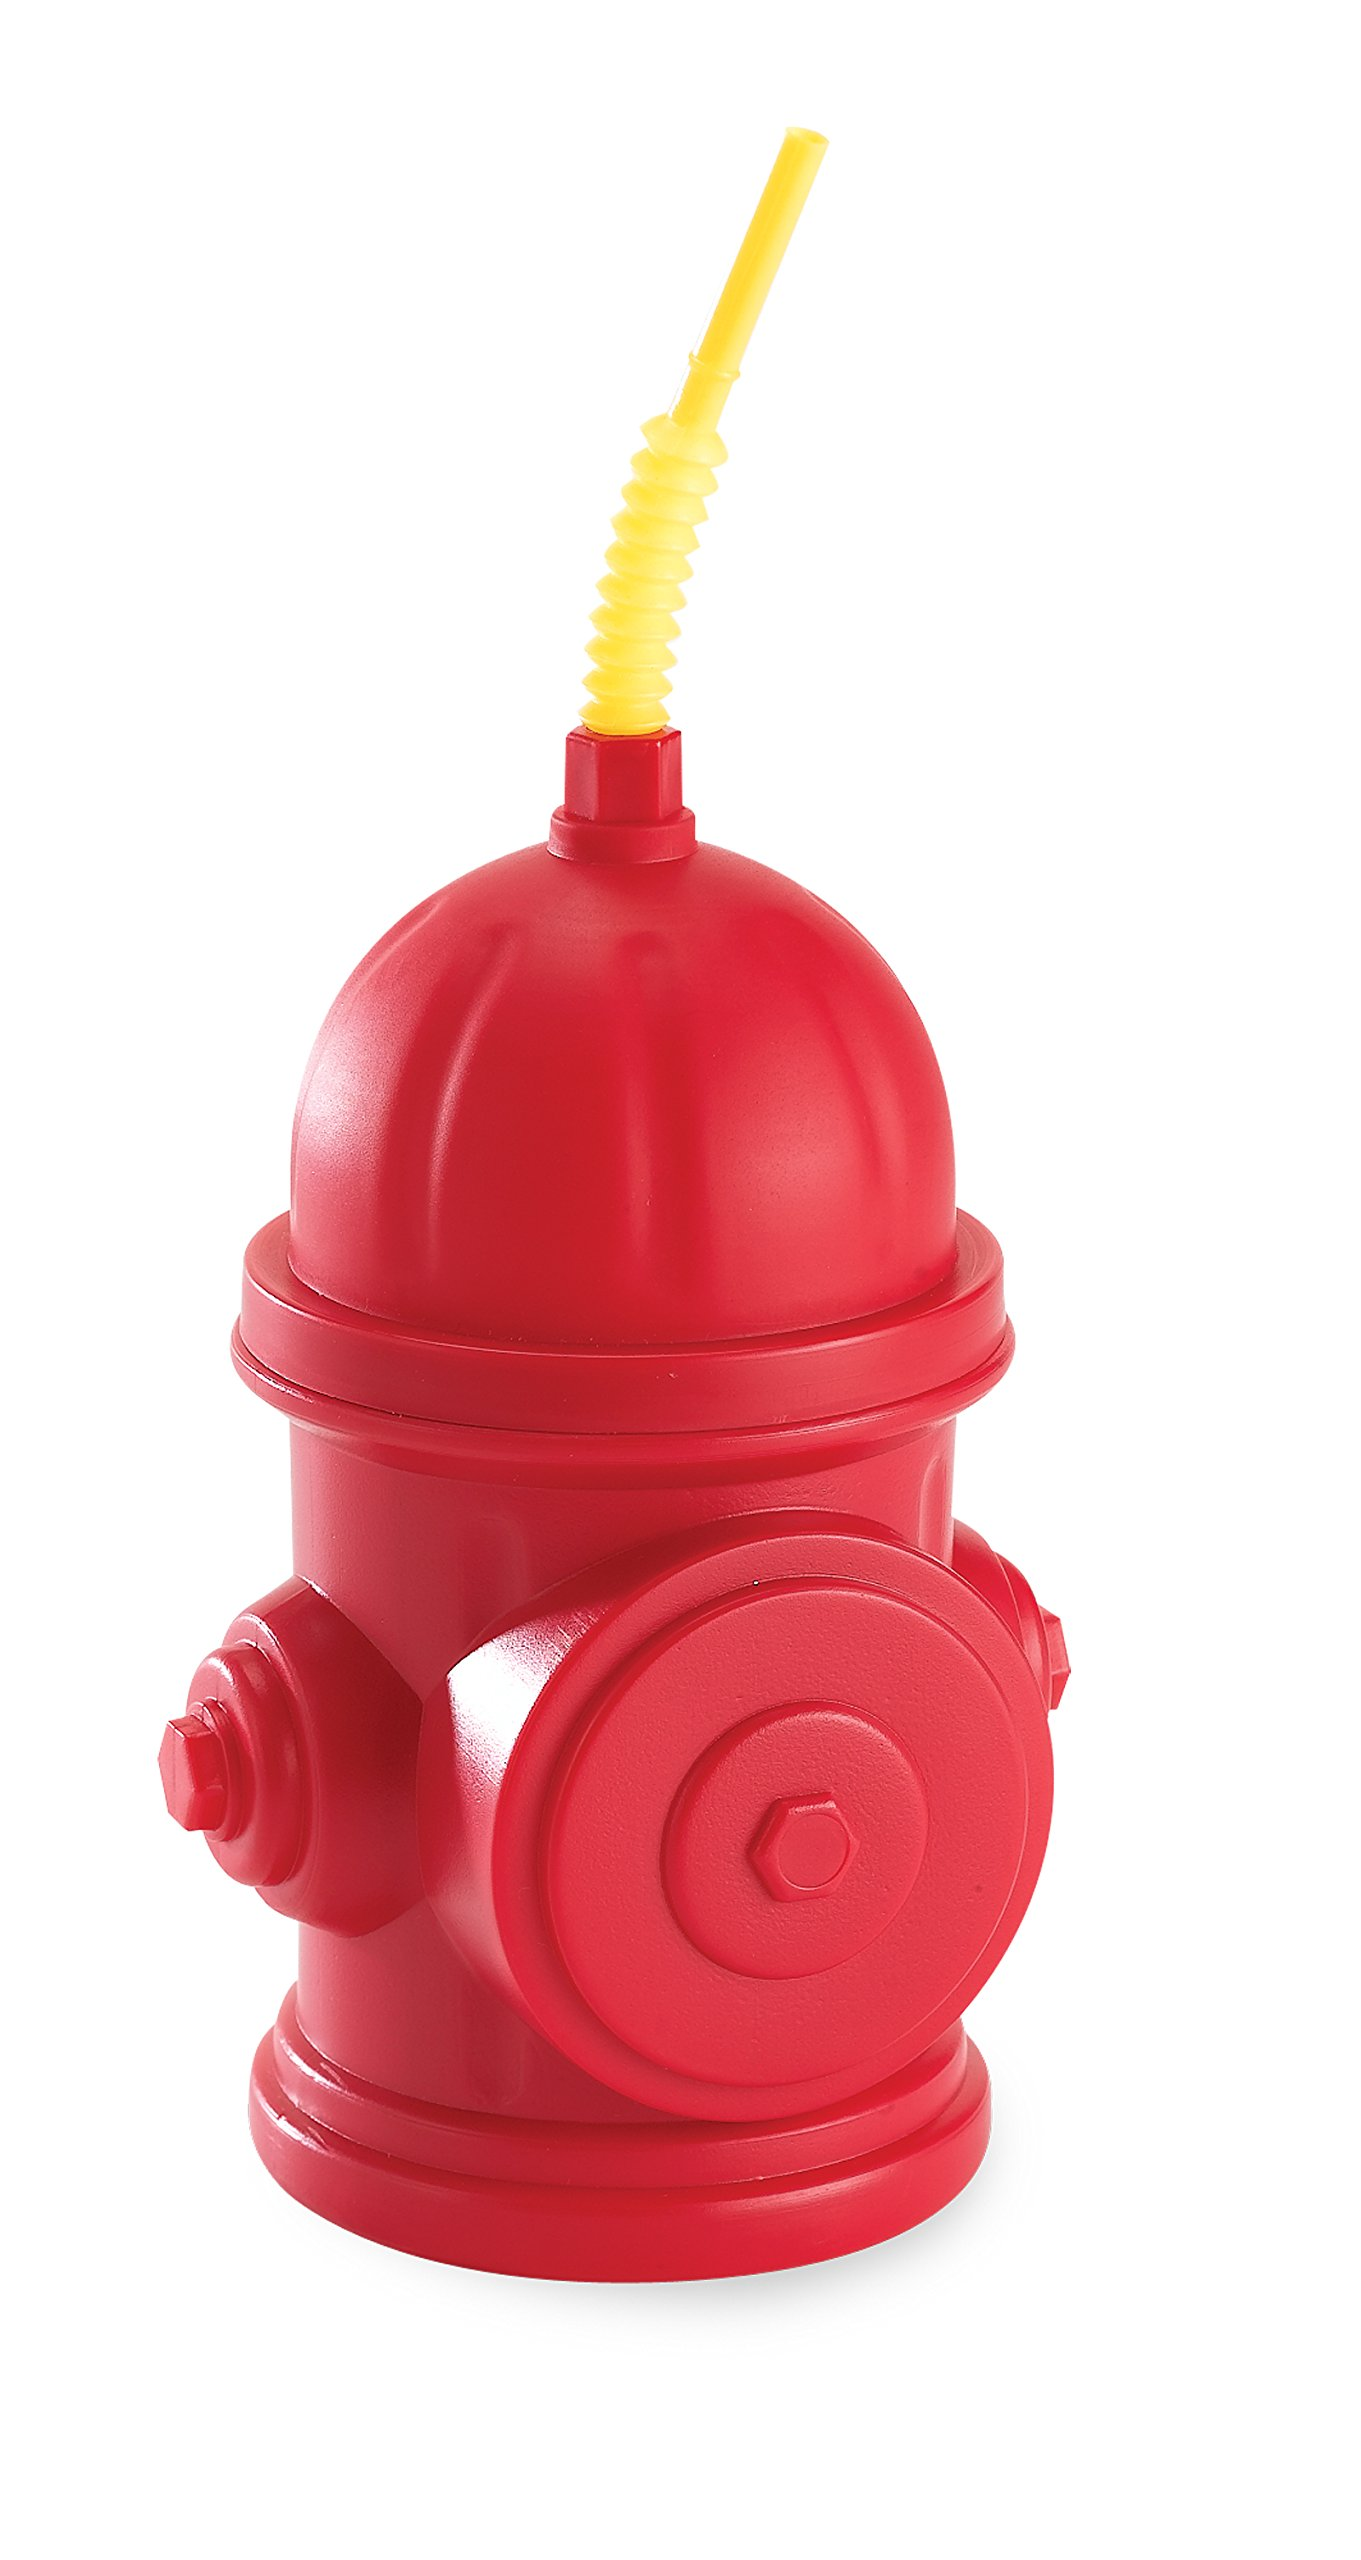 Fireman Fire Truck Childrens Birthday Party Supplies - Red Fire Hydrant Plastic Sippy Cup with Straw (8)